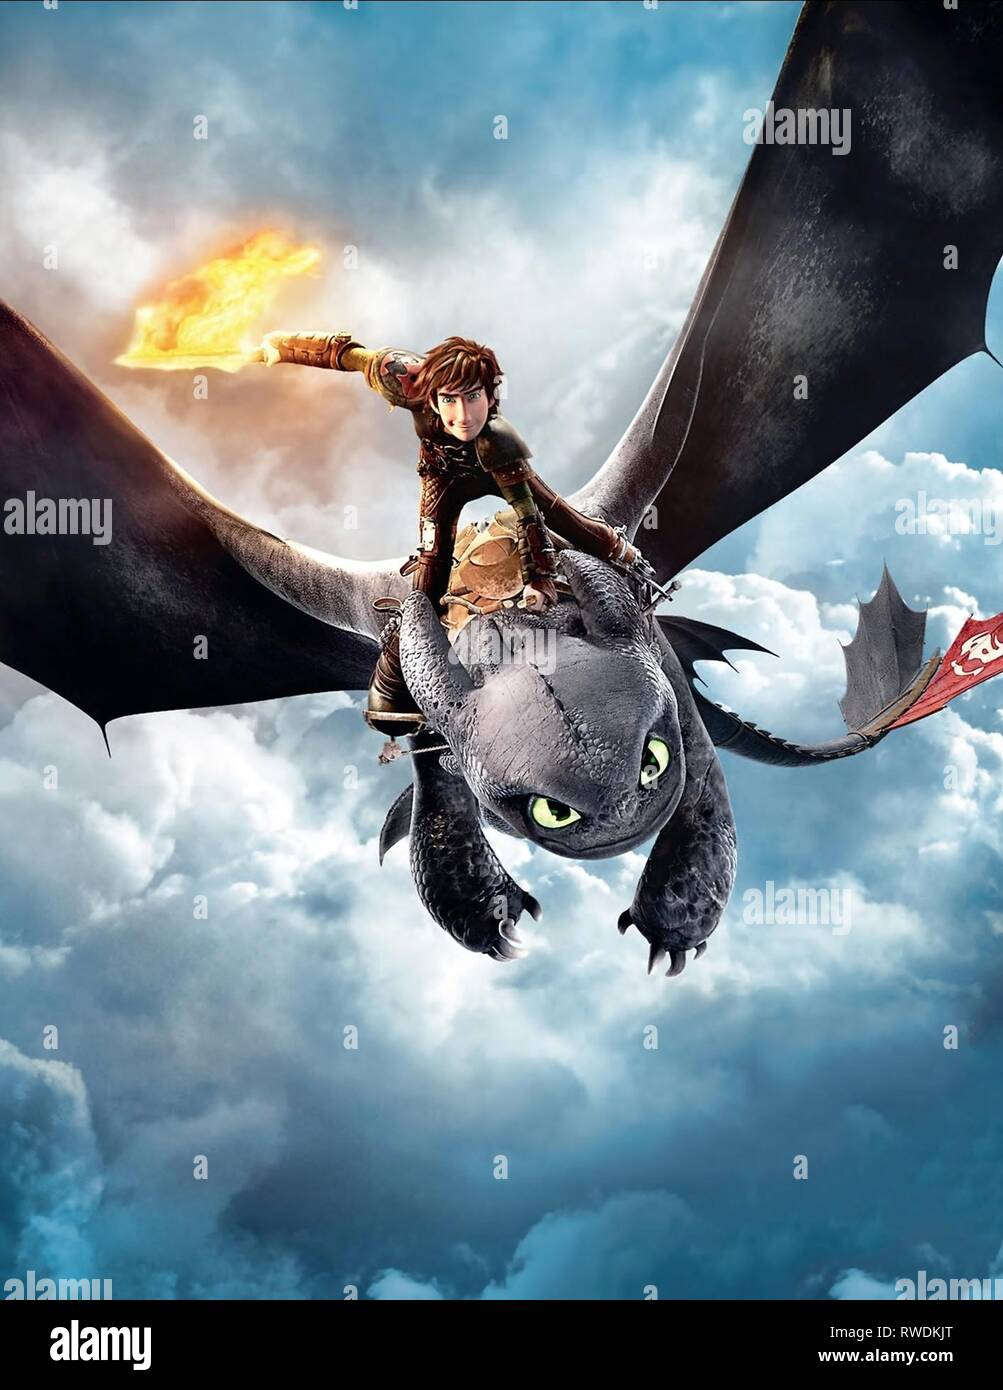 Hiccup Toothless How To Train Your Dragon 2 2014 Stock Photo Alamy